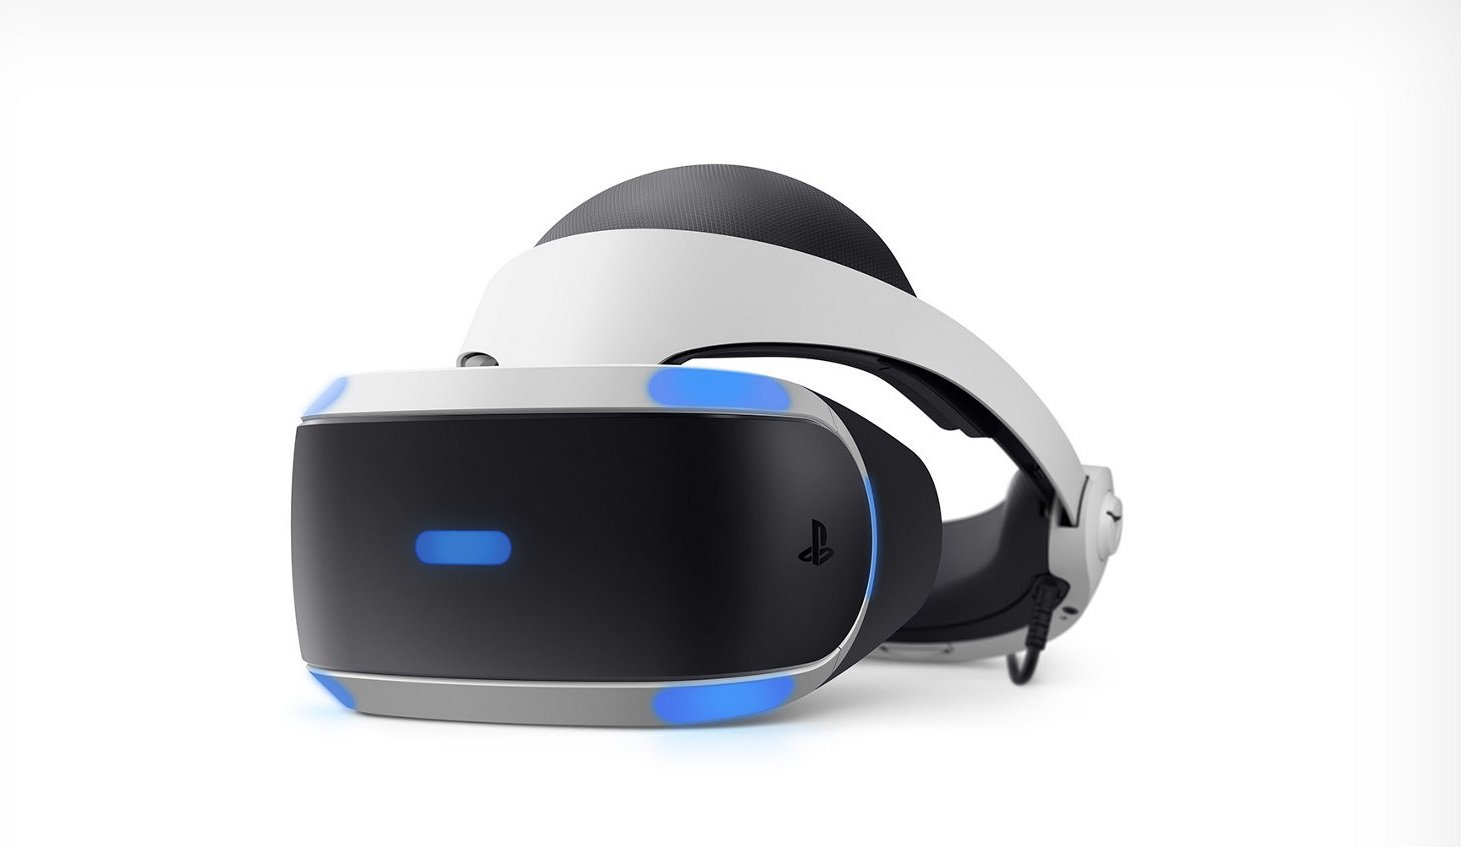 You can get a PlayStation VR system at Kohl's during Black Friday 2019 for $199.99 that comes bundled with Moss and Astro Bot Rescue Mission.